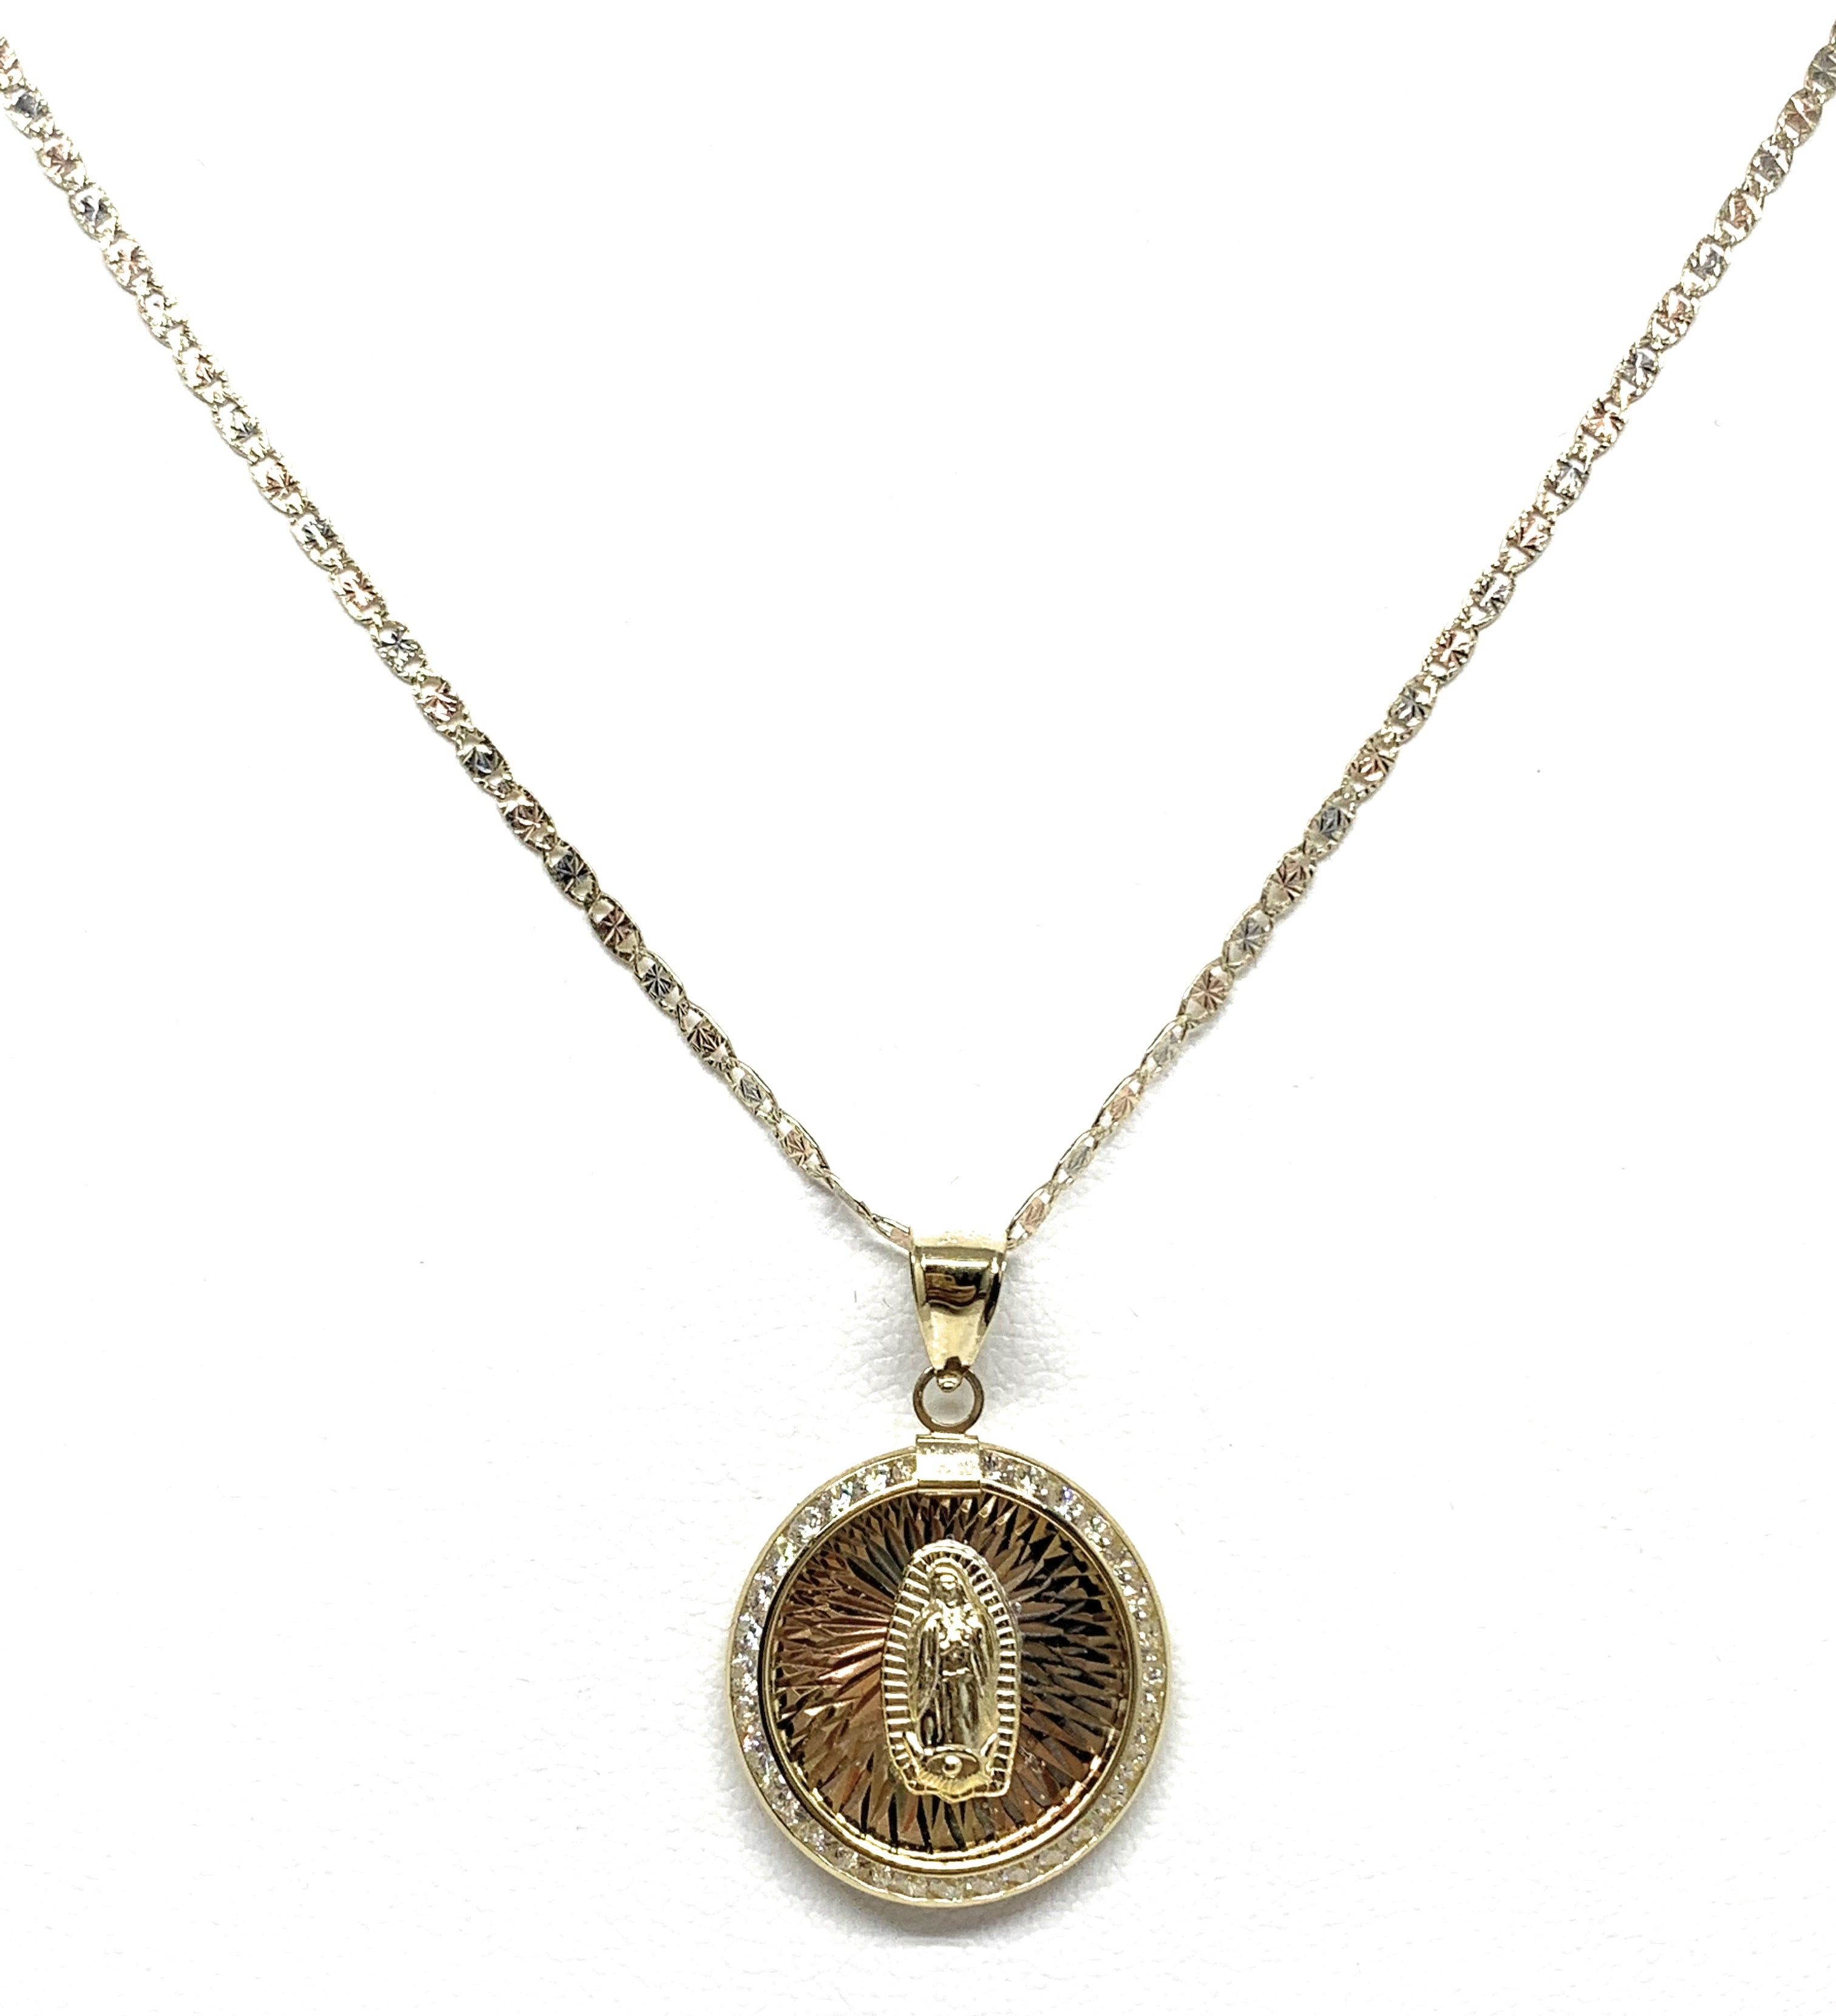 10k Solid Gold Tri-Color Virrgin Mary CZ Round Pendant Necklace Virrgen Gaudalupe (MED)